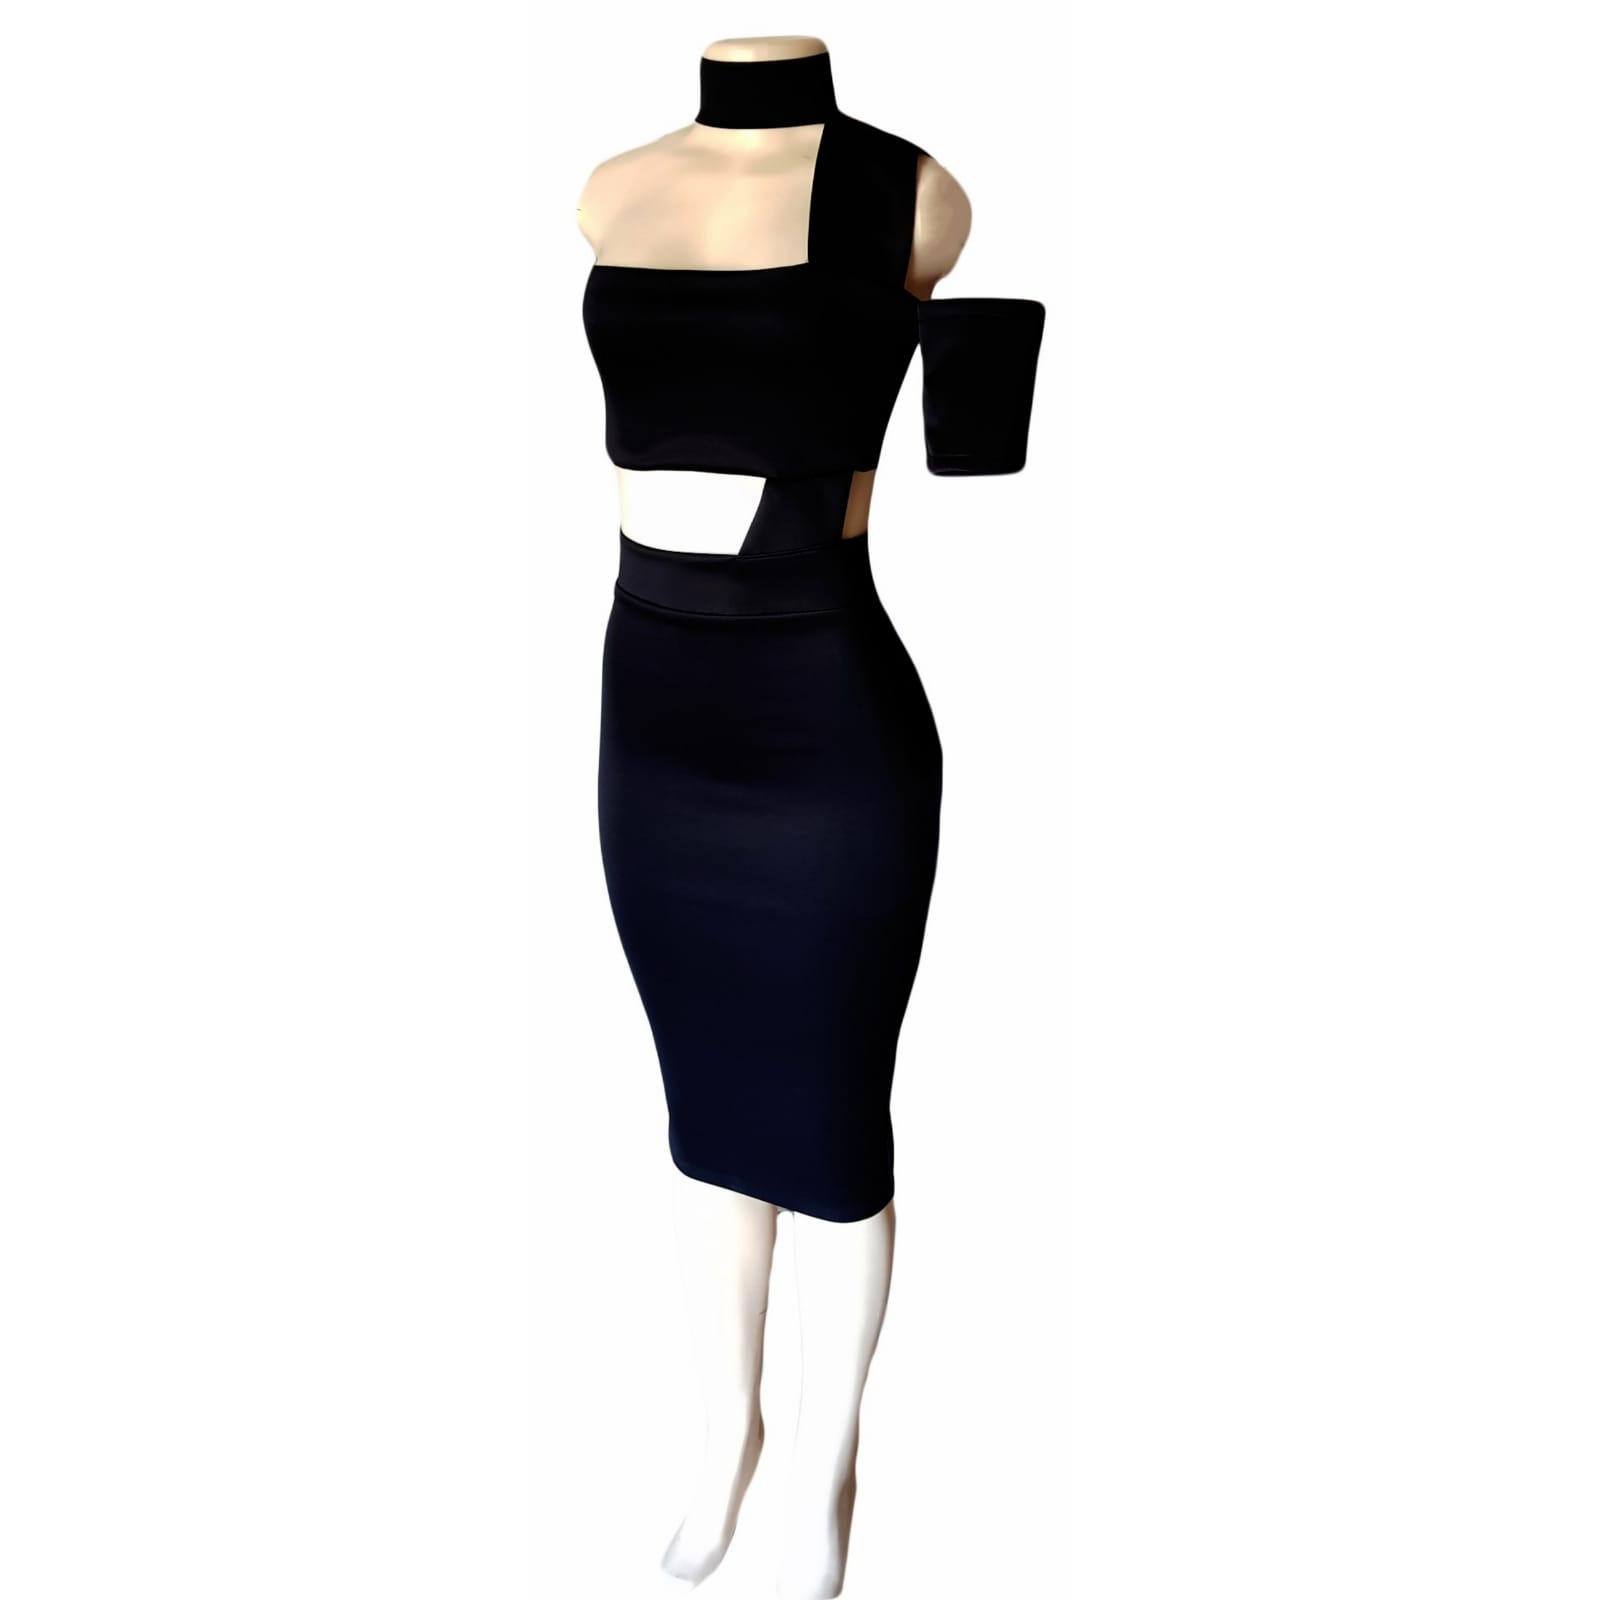 Black boob tube knee length smart casual dress 3 black boobtube knee length smart casual dress. With open tummy with strap detail, with an off shoulder short sleeve, with one shoulder wide strap attached to a wide choker. For a graduation party